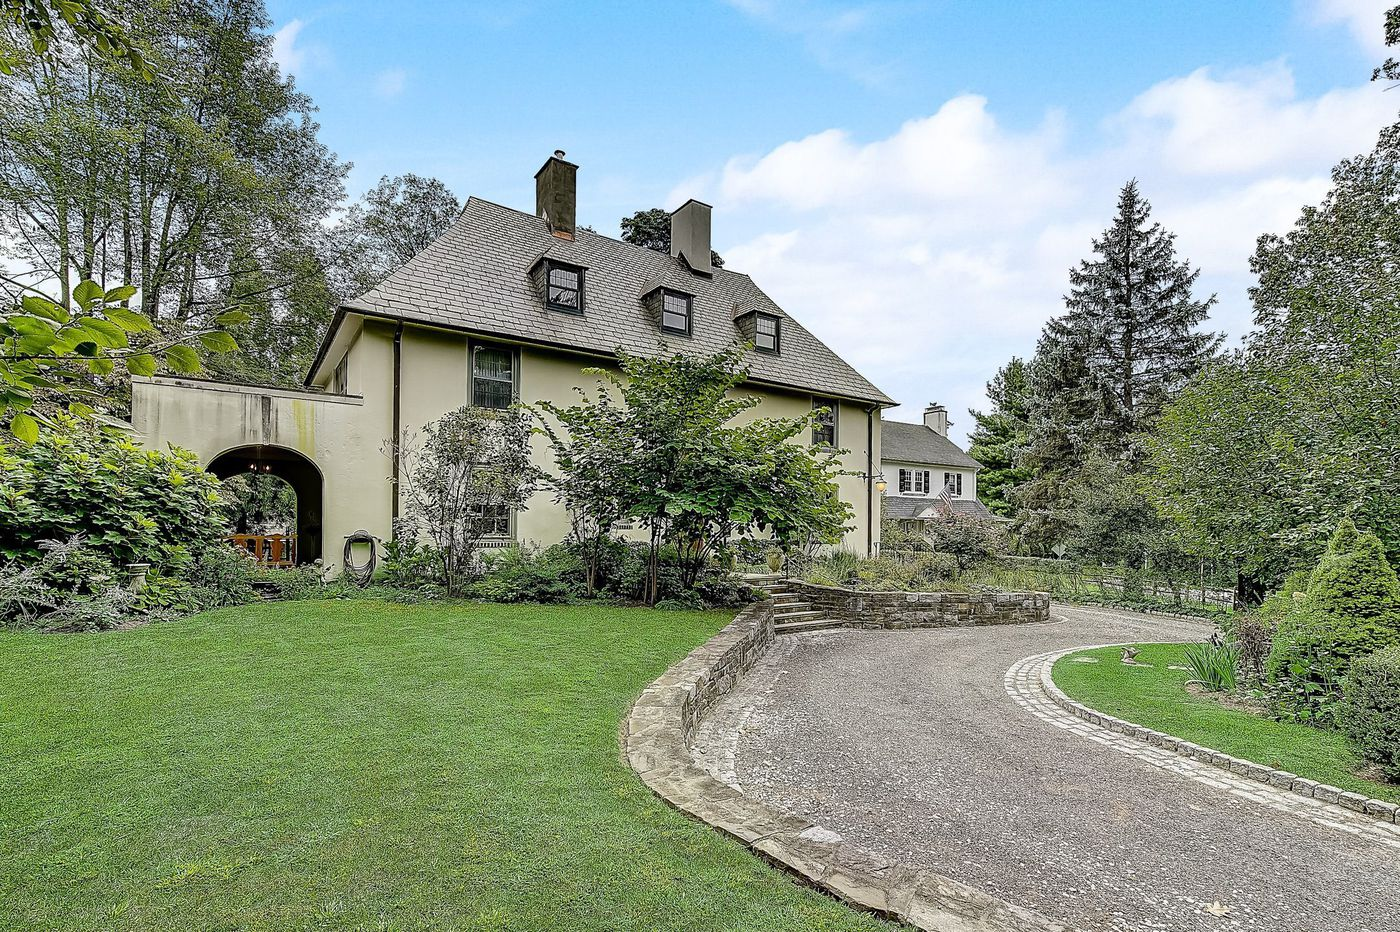 On the market: An English Colonial on the Main Line for $799,000